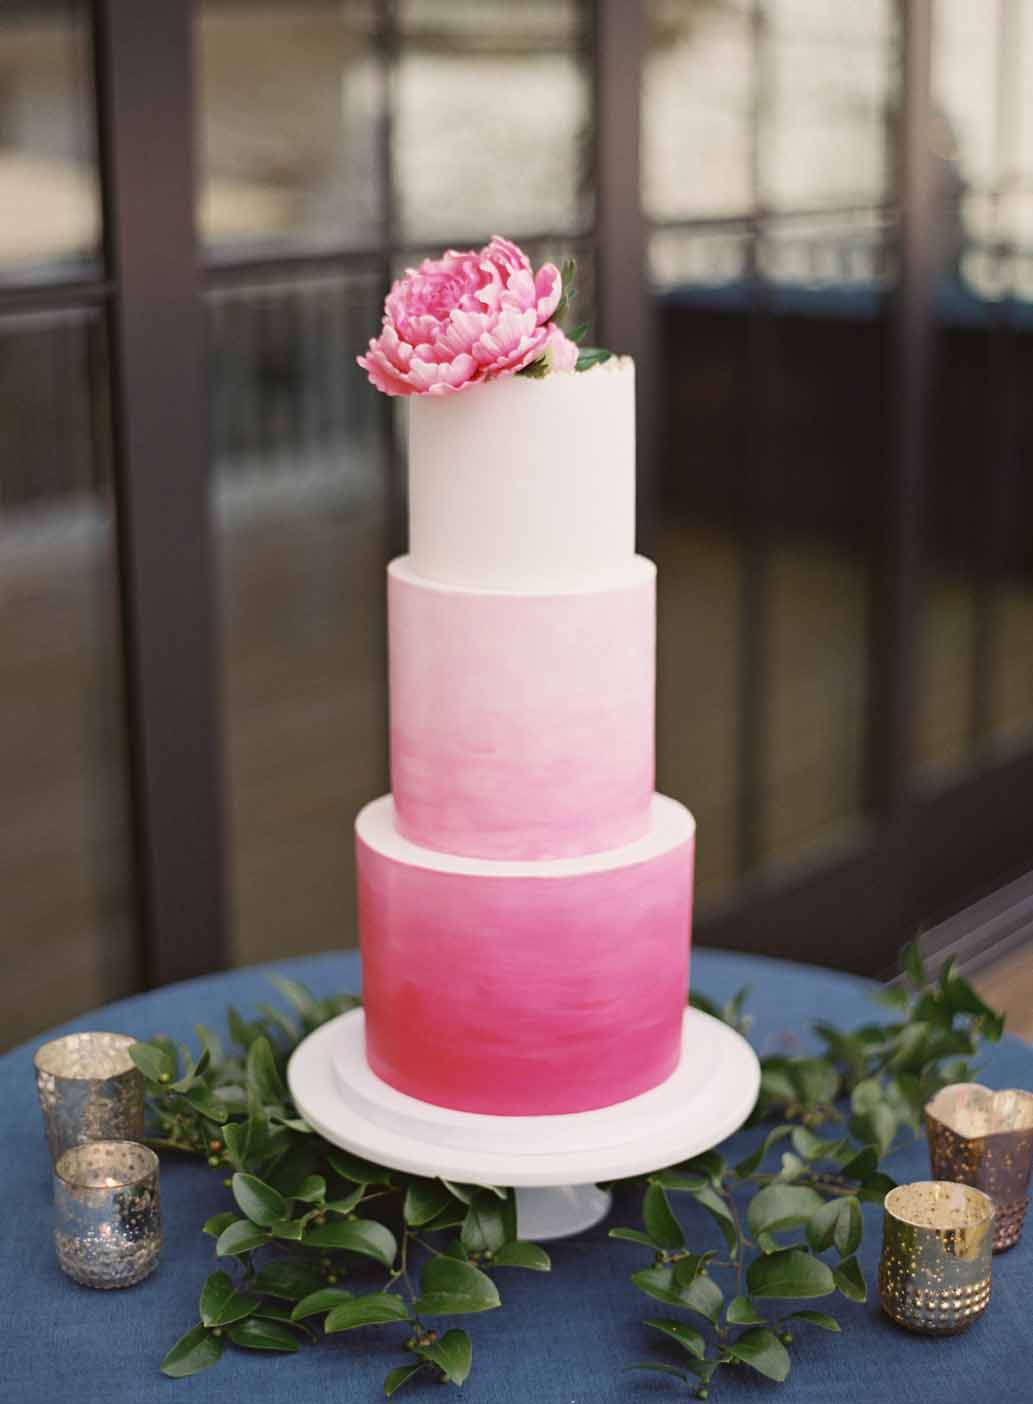 Pink ombre wedding cake topped with pink peony surrounded by greenery on a blue linen tablecloth at a hot pink and peach wedding at Roche Harbor Resort on Orcas Island